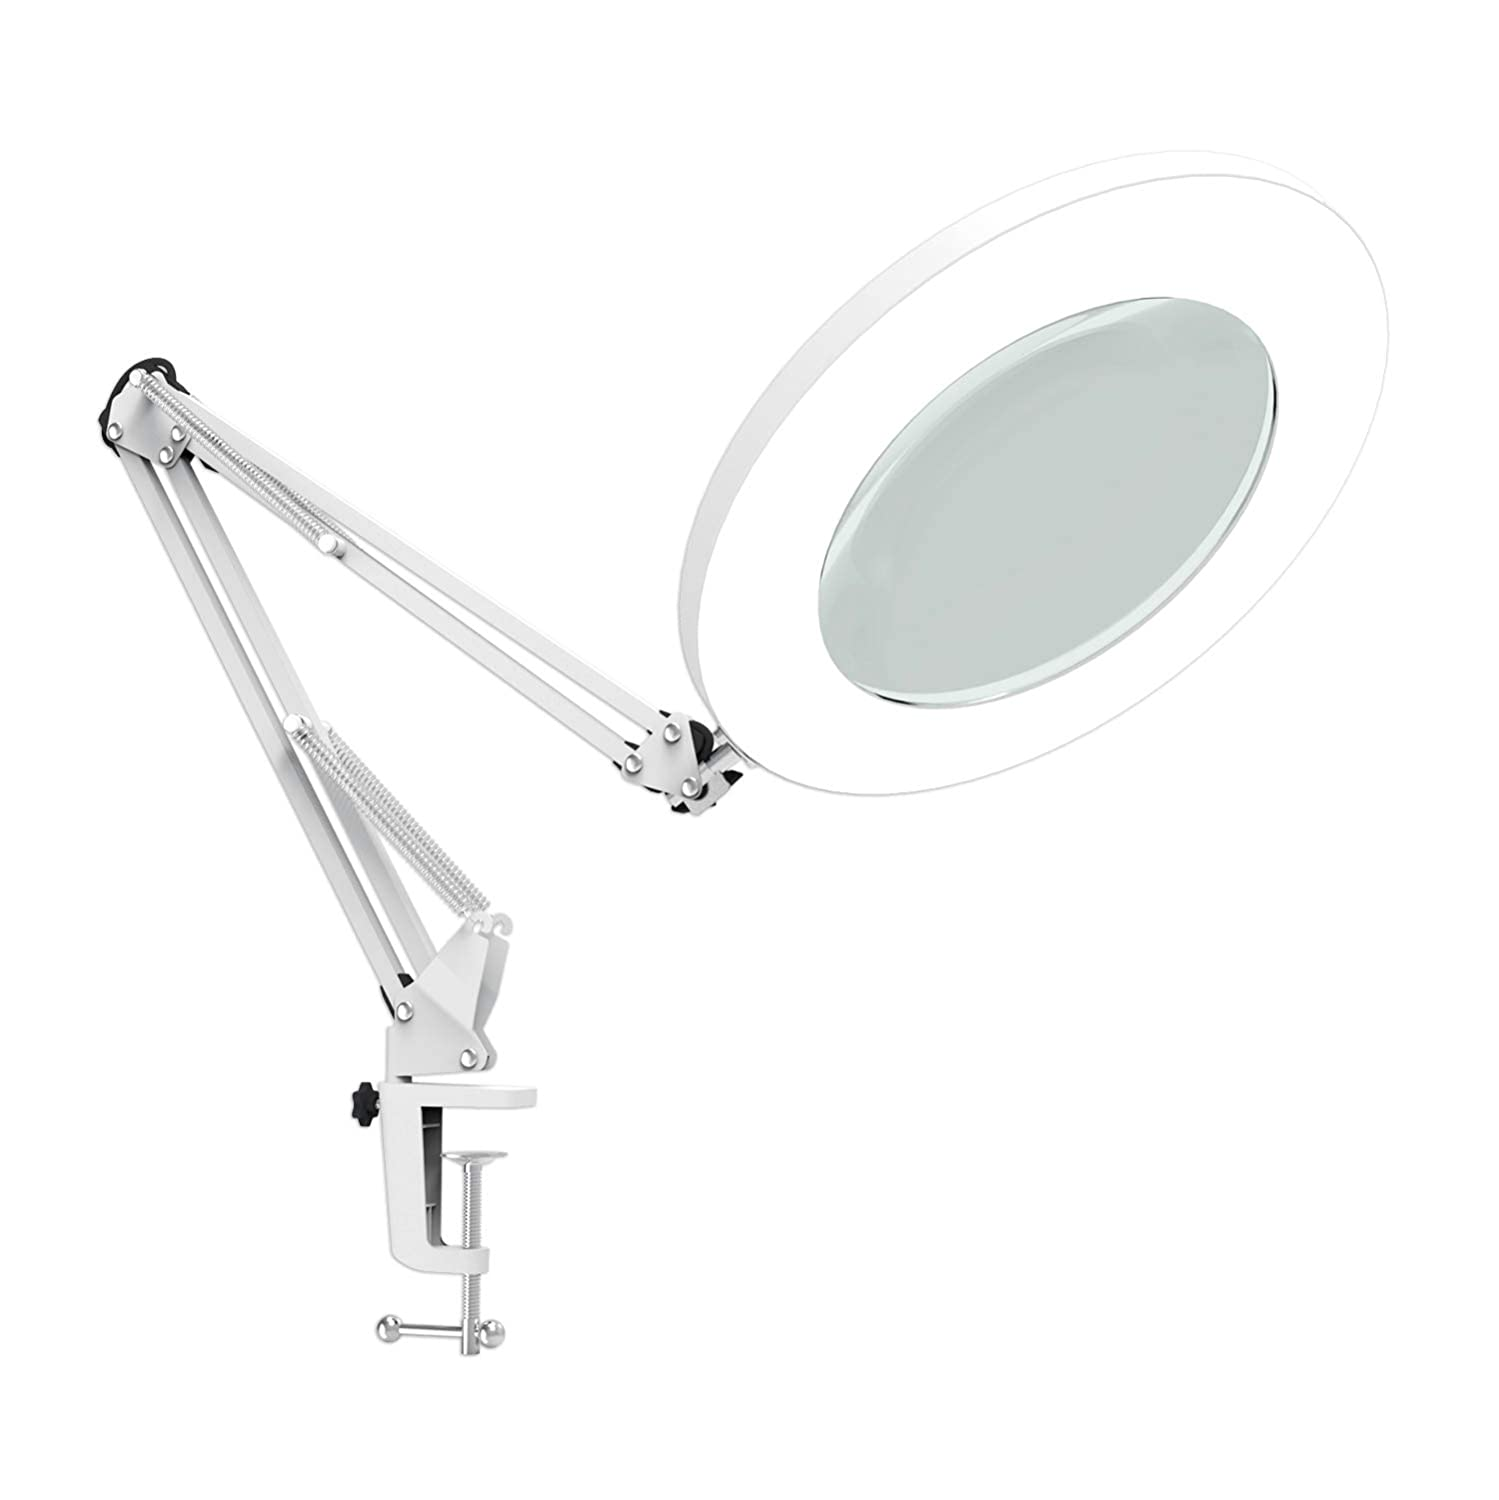 LED Magnifying Lamp, Desk Clamp Lamp 360° Adjustable Swivel Arm, 5X Magnifier Light Dimmable, Adjustable Color Temperature for Crafts Reading Sewing and Professional Use Hokone